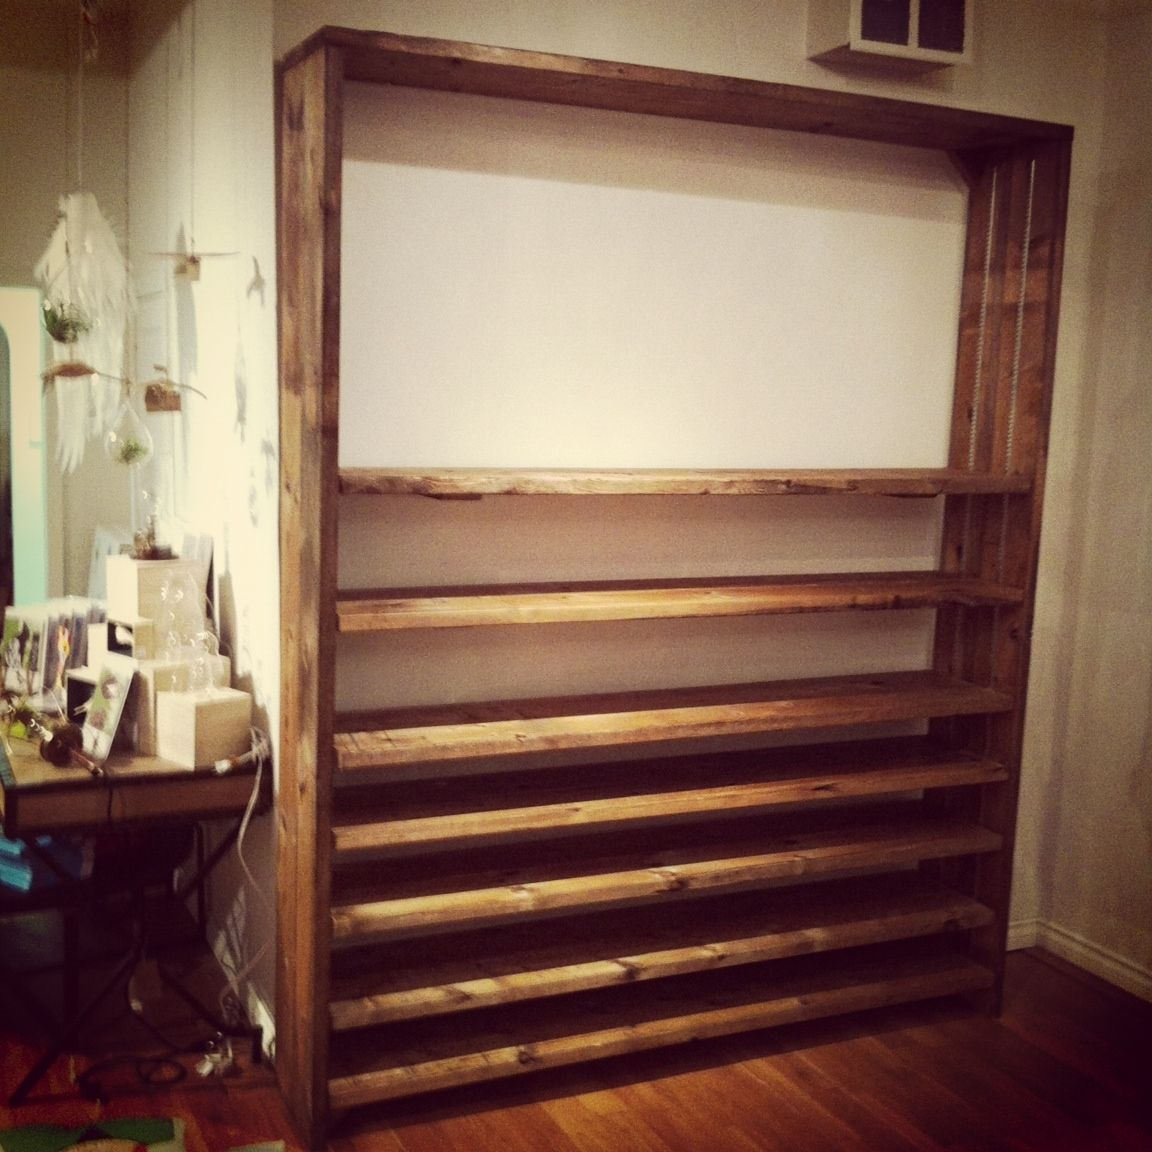 Superb img of Hand Made Adjustable Reclaimed Wood Shelves by J&S Reclaimed Wood  with #371319 color and 1152x1152 pixels